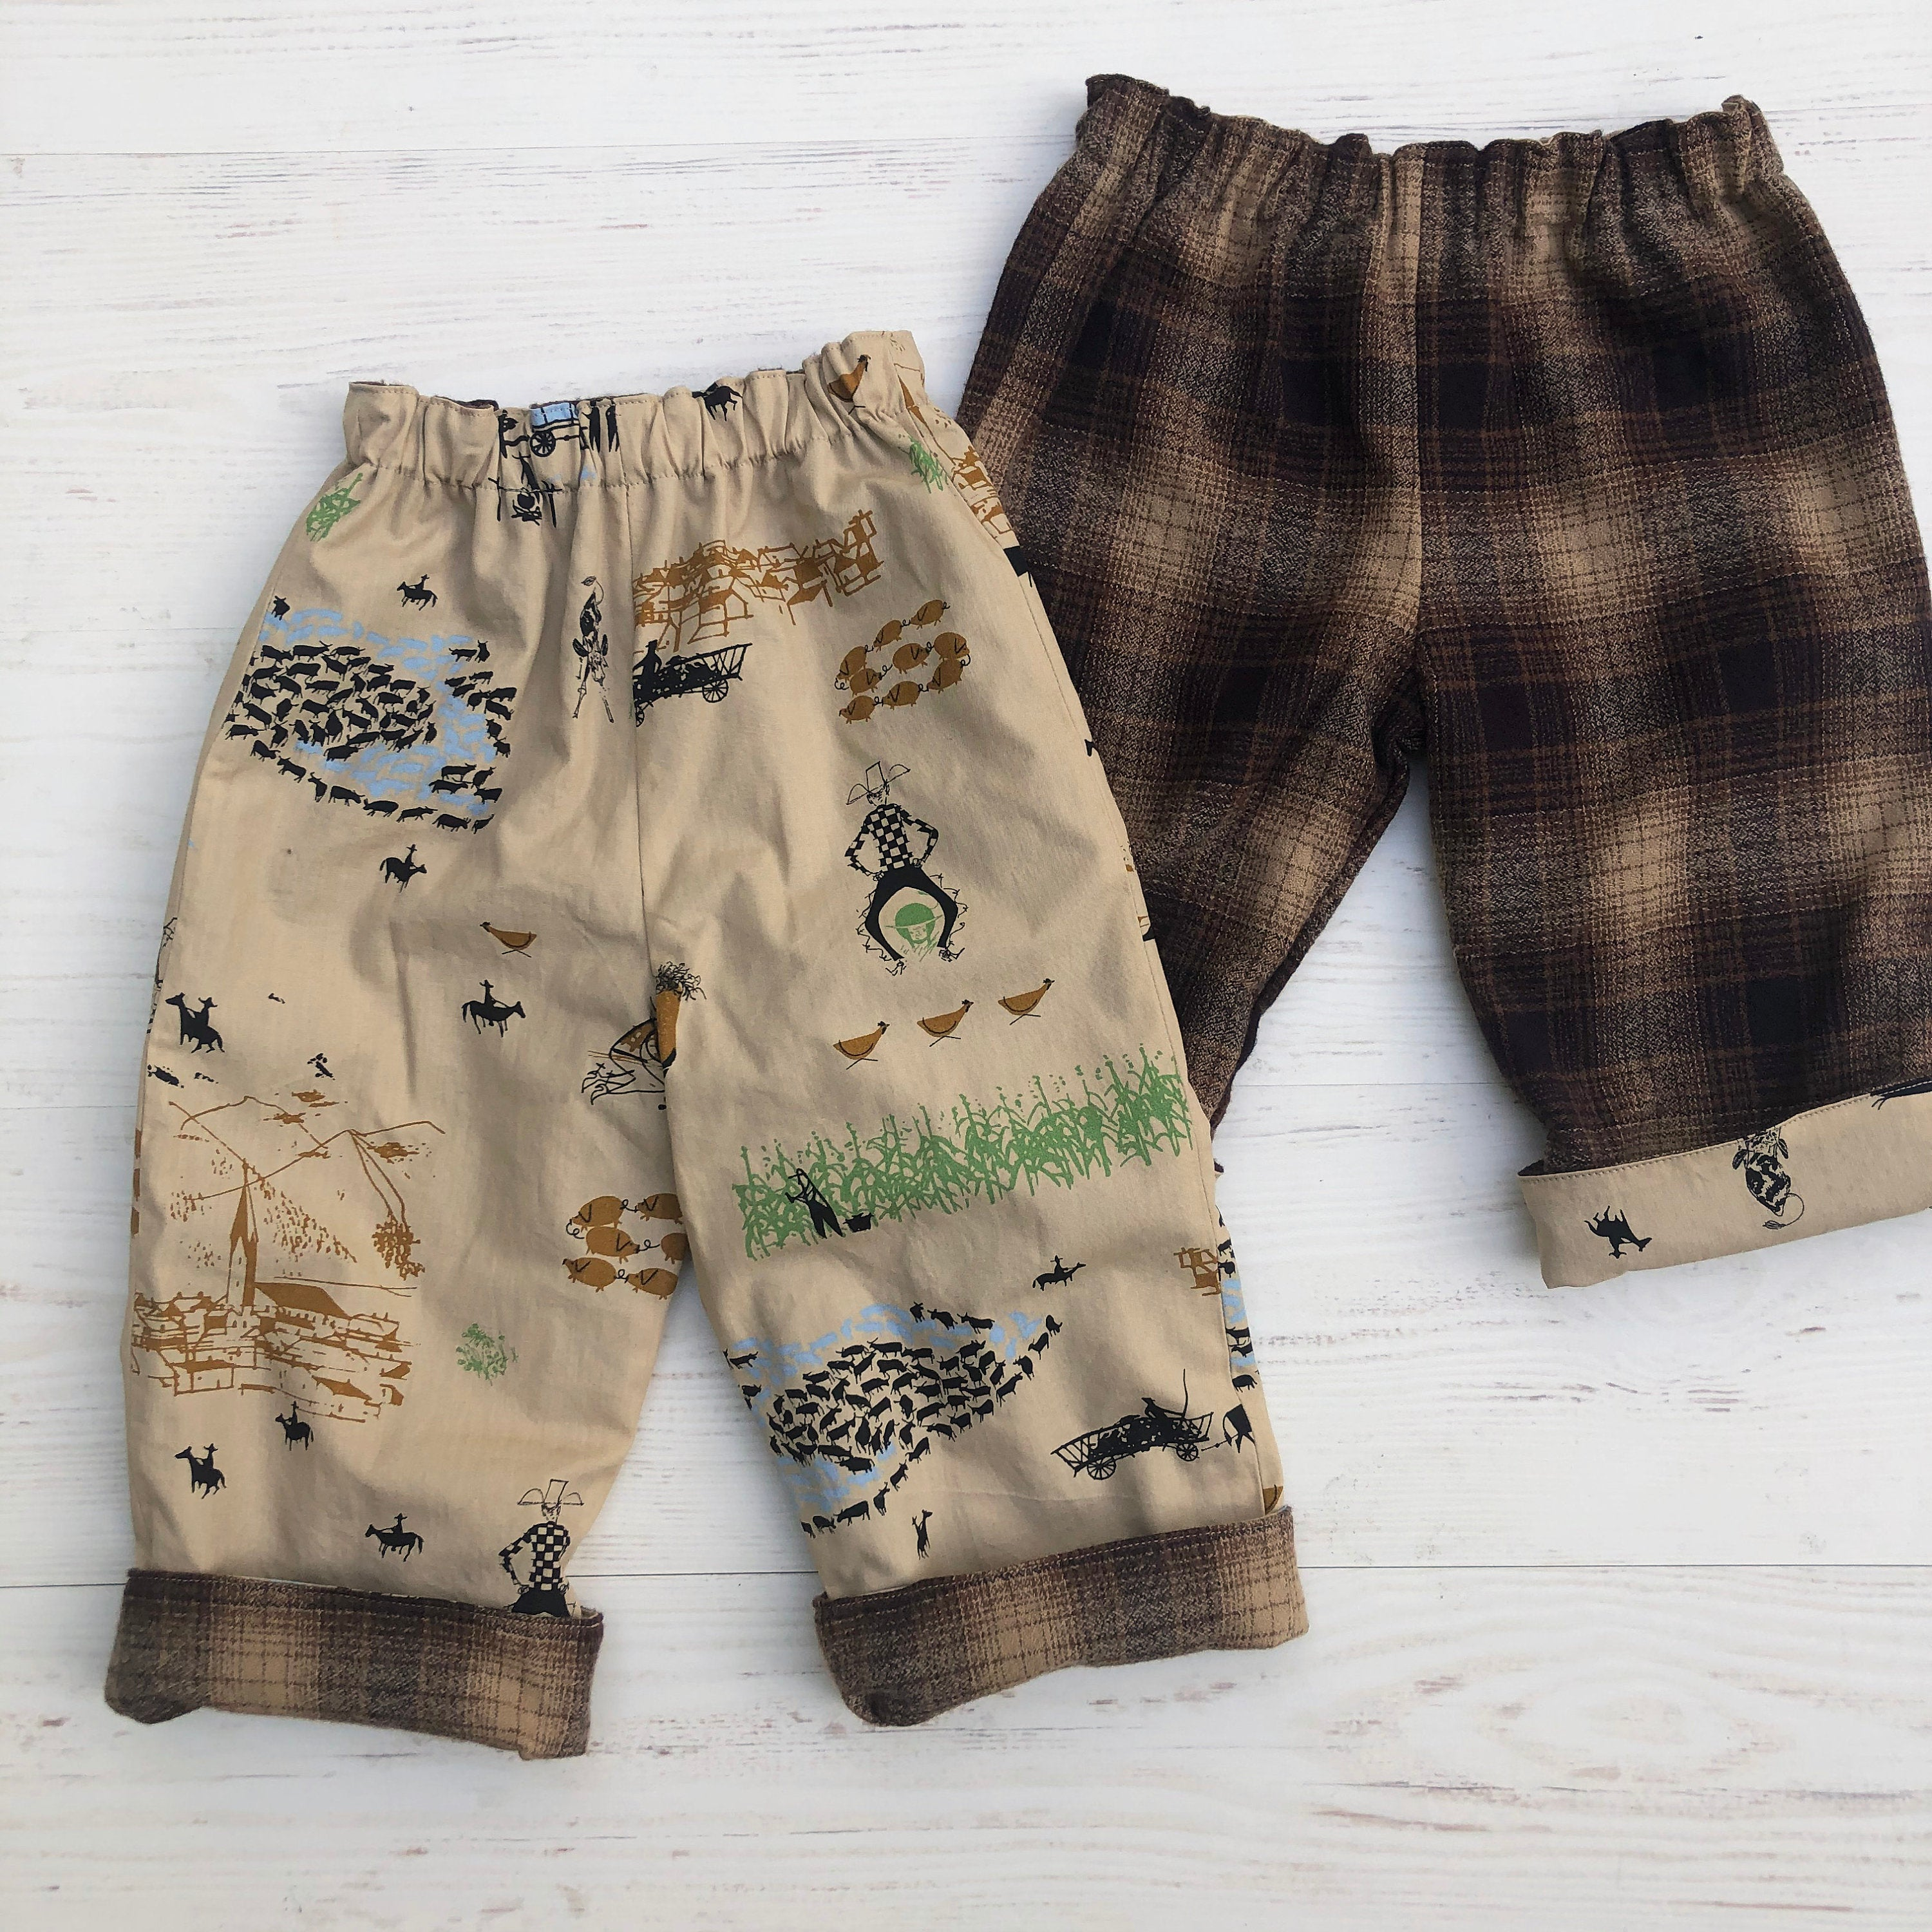 Flannel reversible pants Charley Harper Cowboy - little girl Pearl